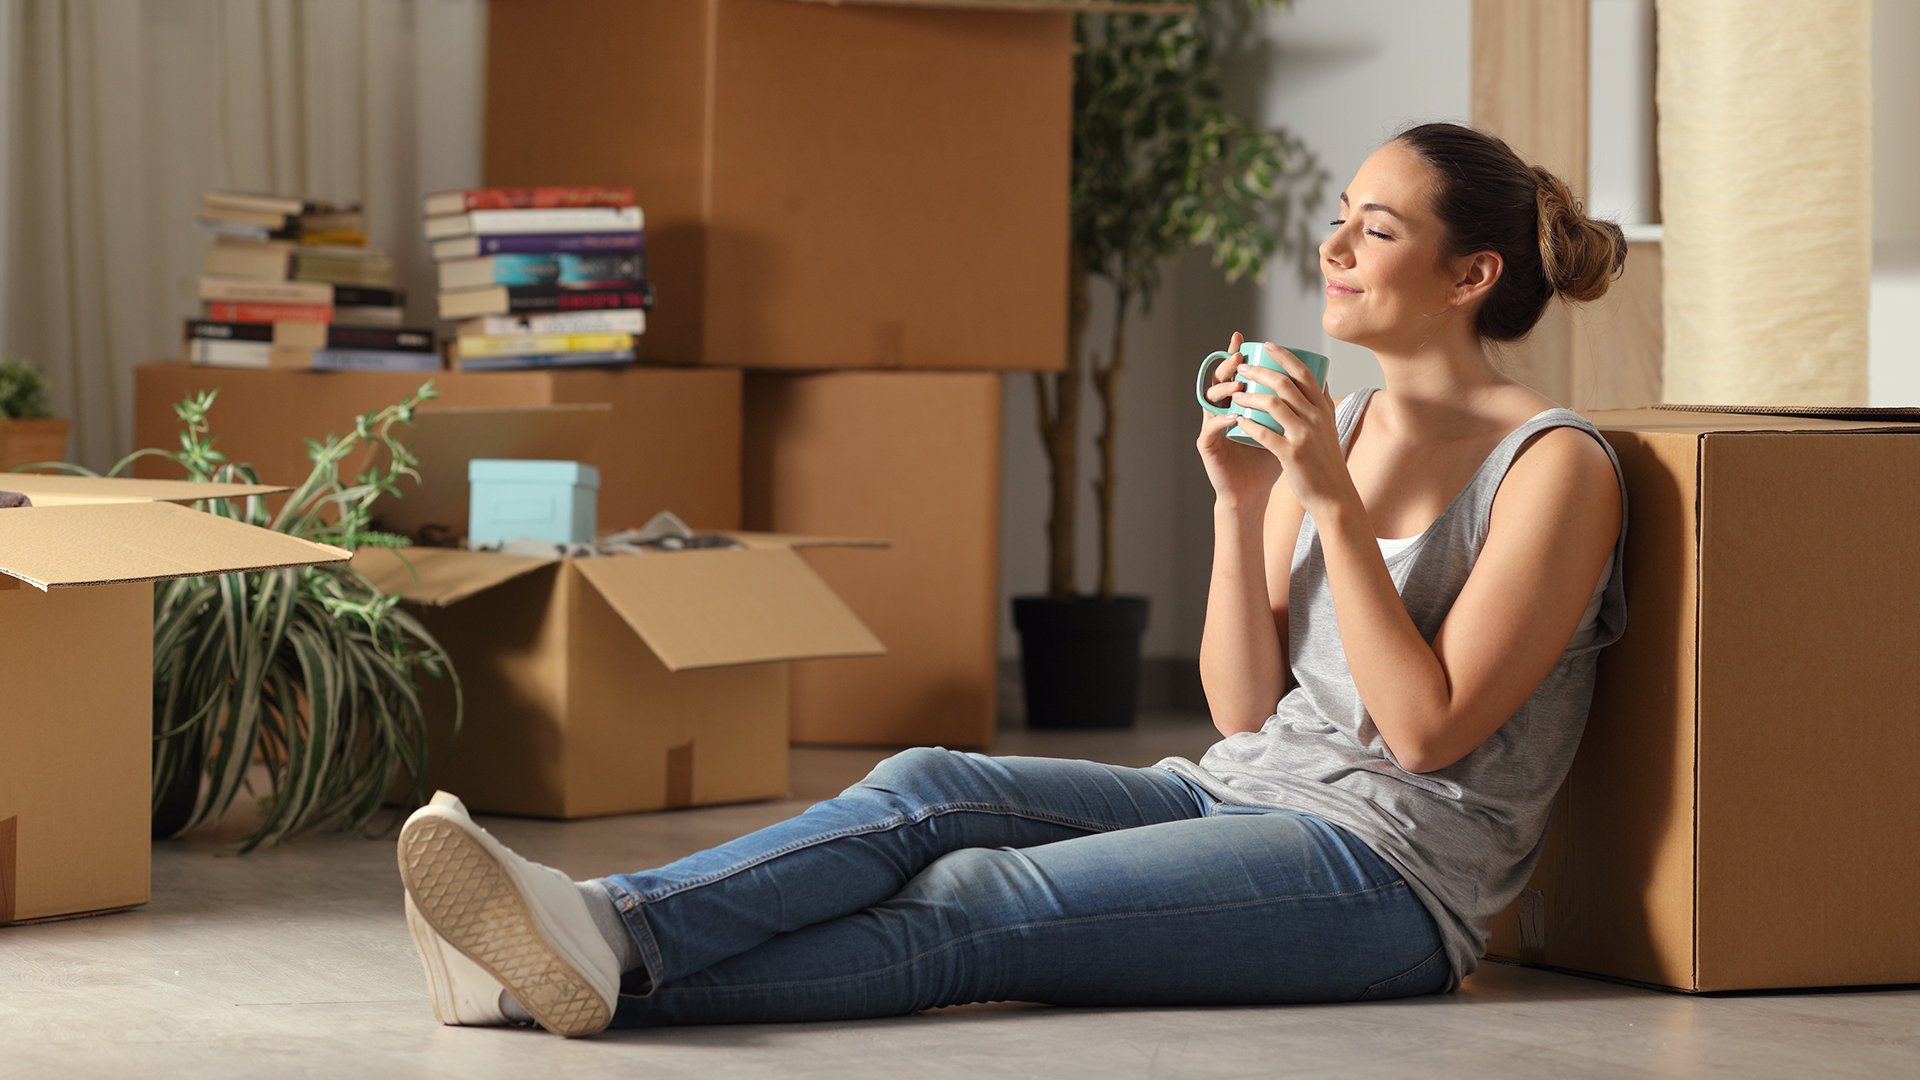 Woman sitting near moving boxes